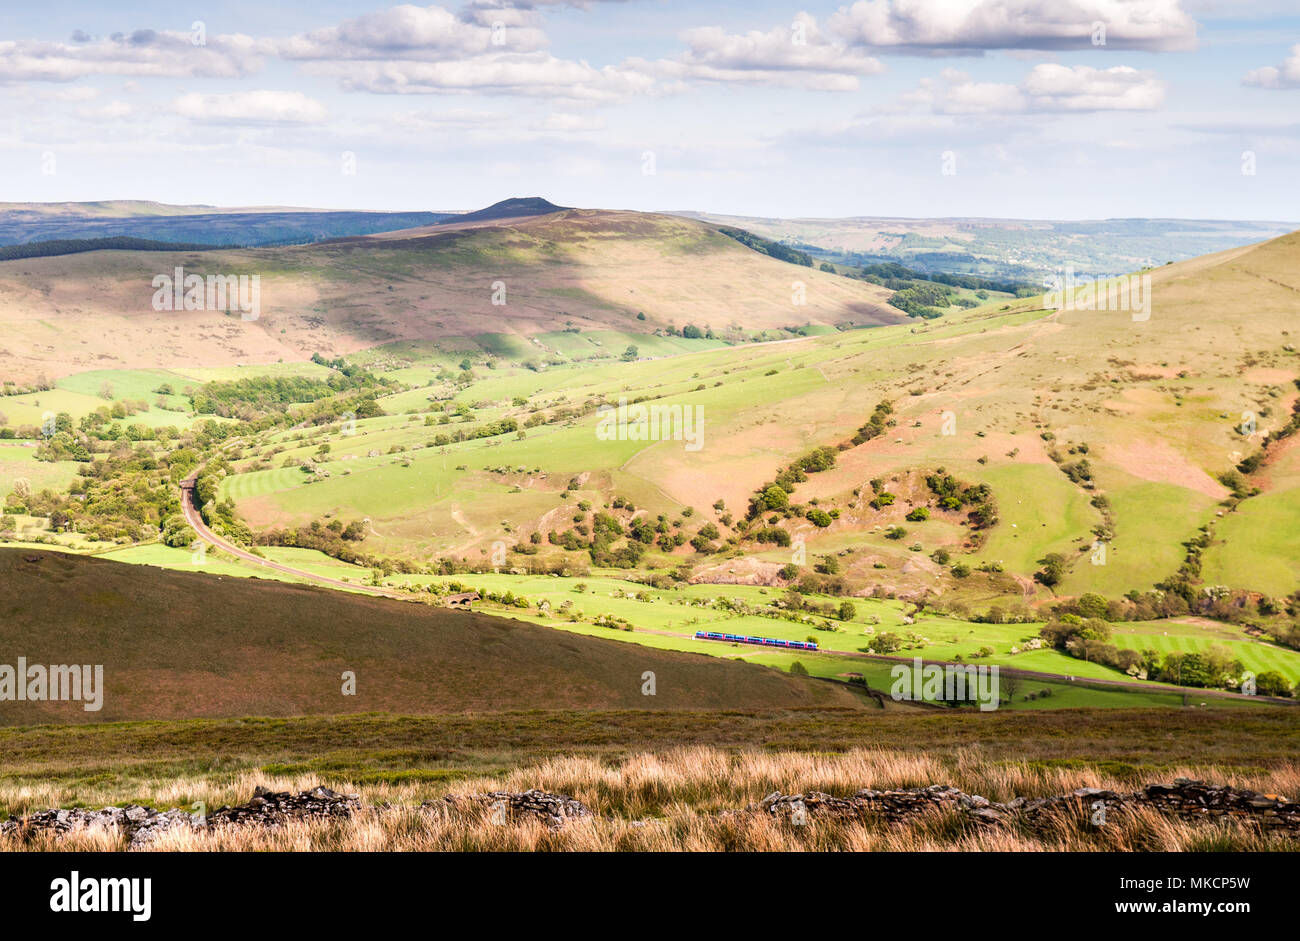 A TransPennine Express Class 185 passenger train travelling through Edale on the Hope Valley Line, seen from the moorland above. - Stock Image